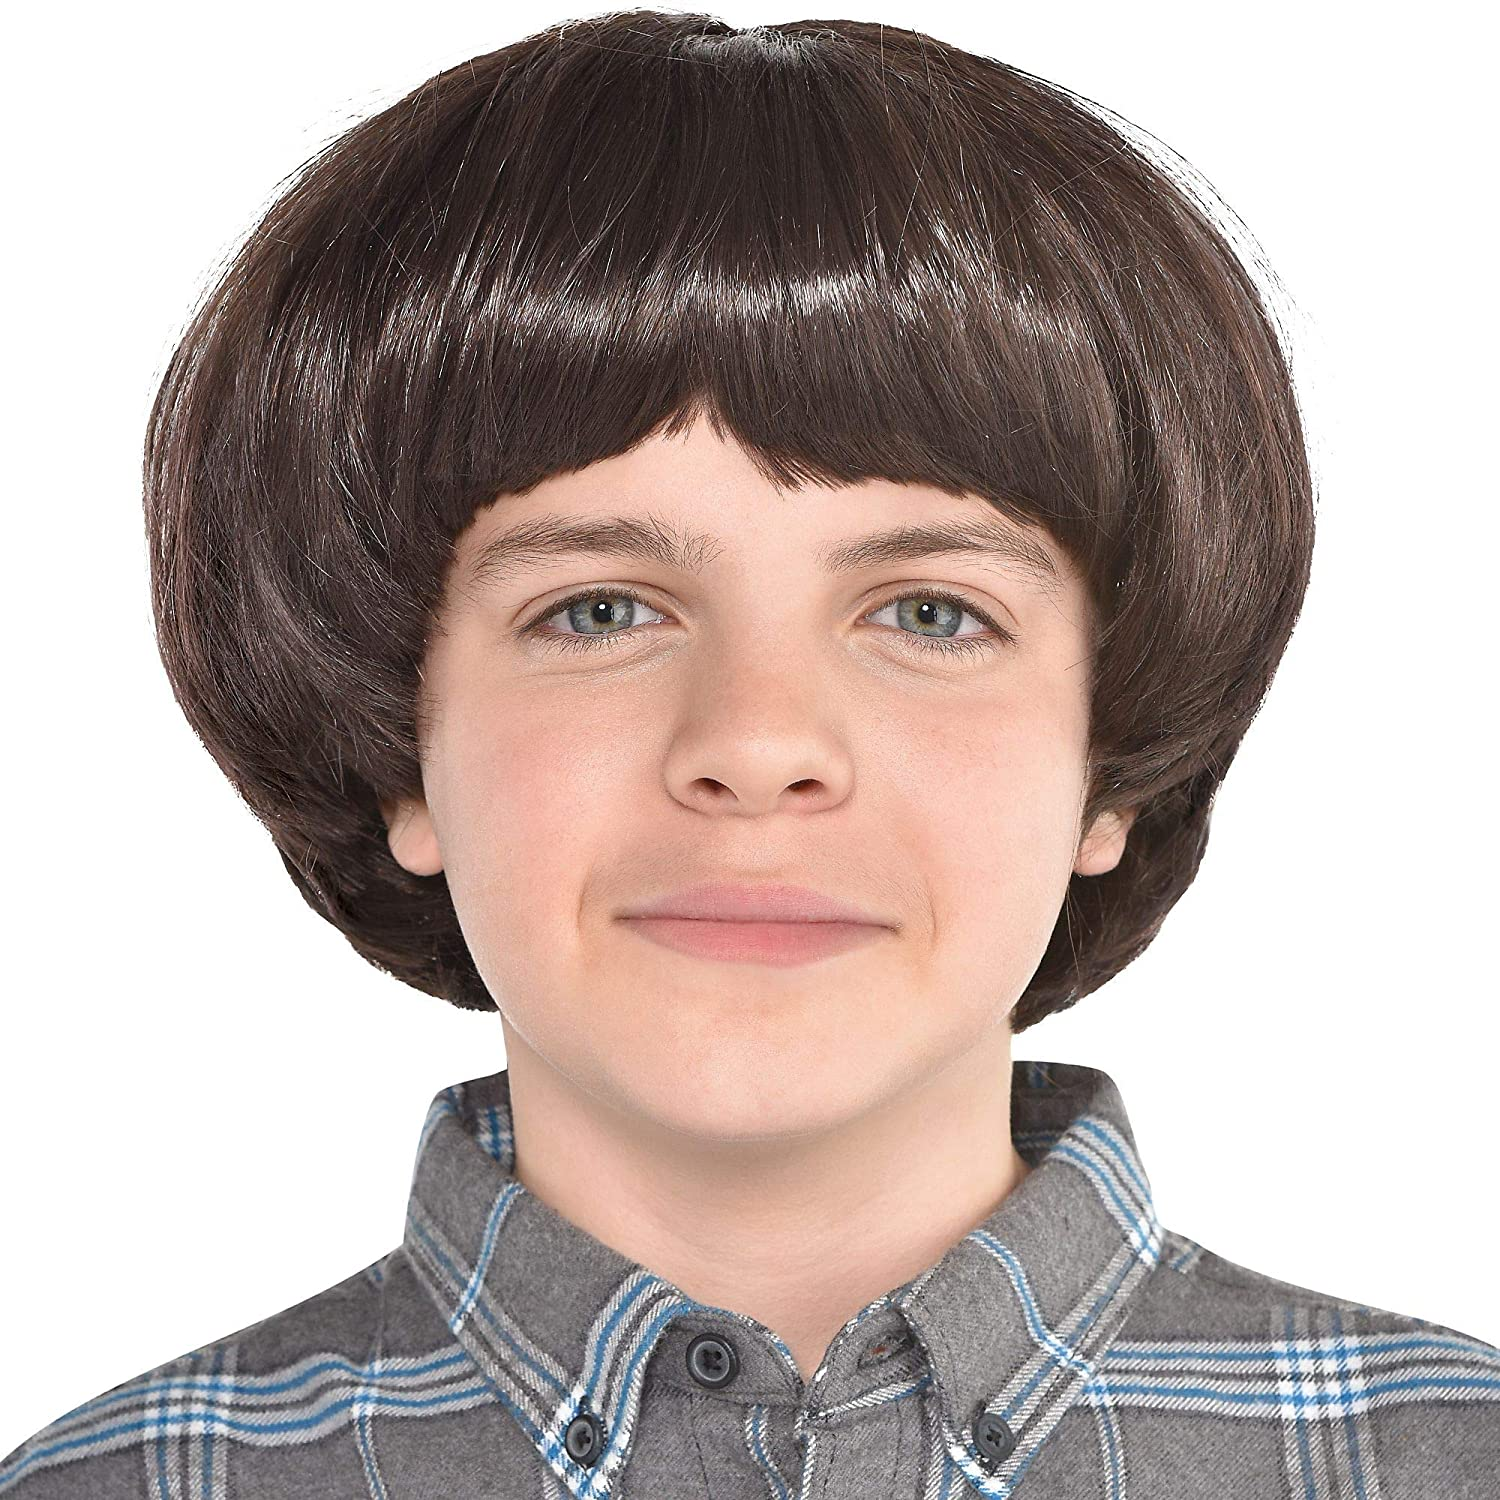 Party City Stranger Super sale period limited Things Will Halloween Nashville-Davidson Mall Byers Acce Costume Wig